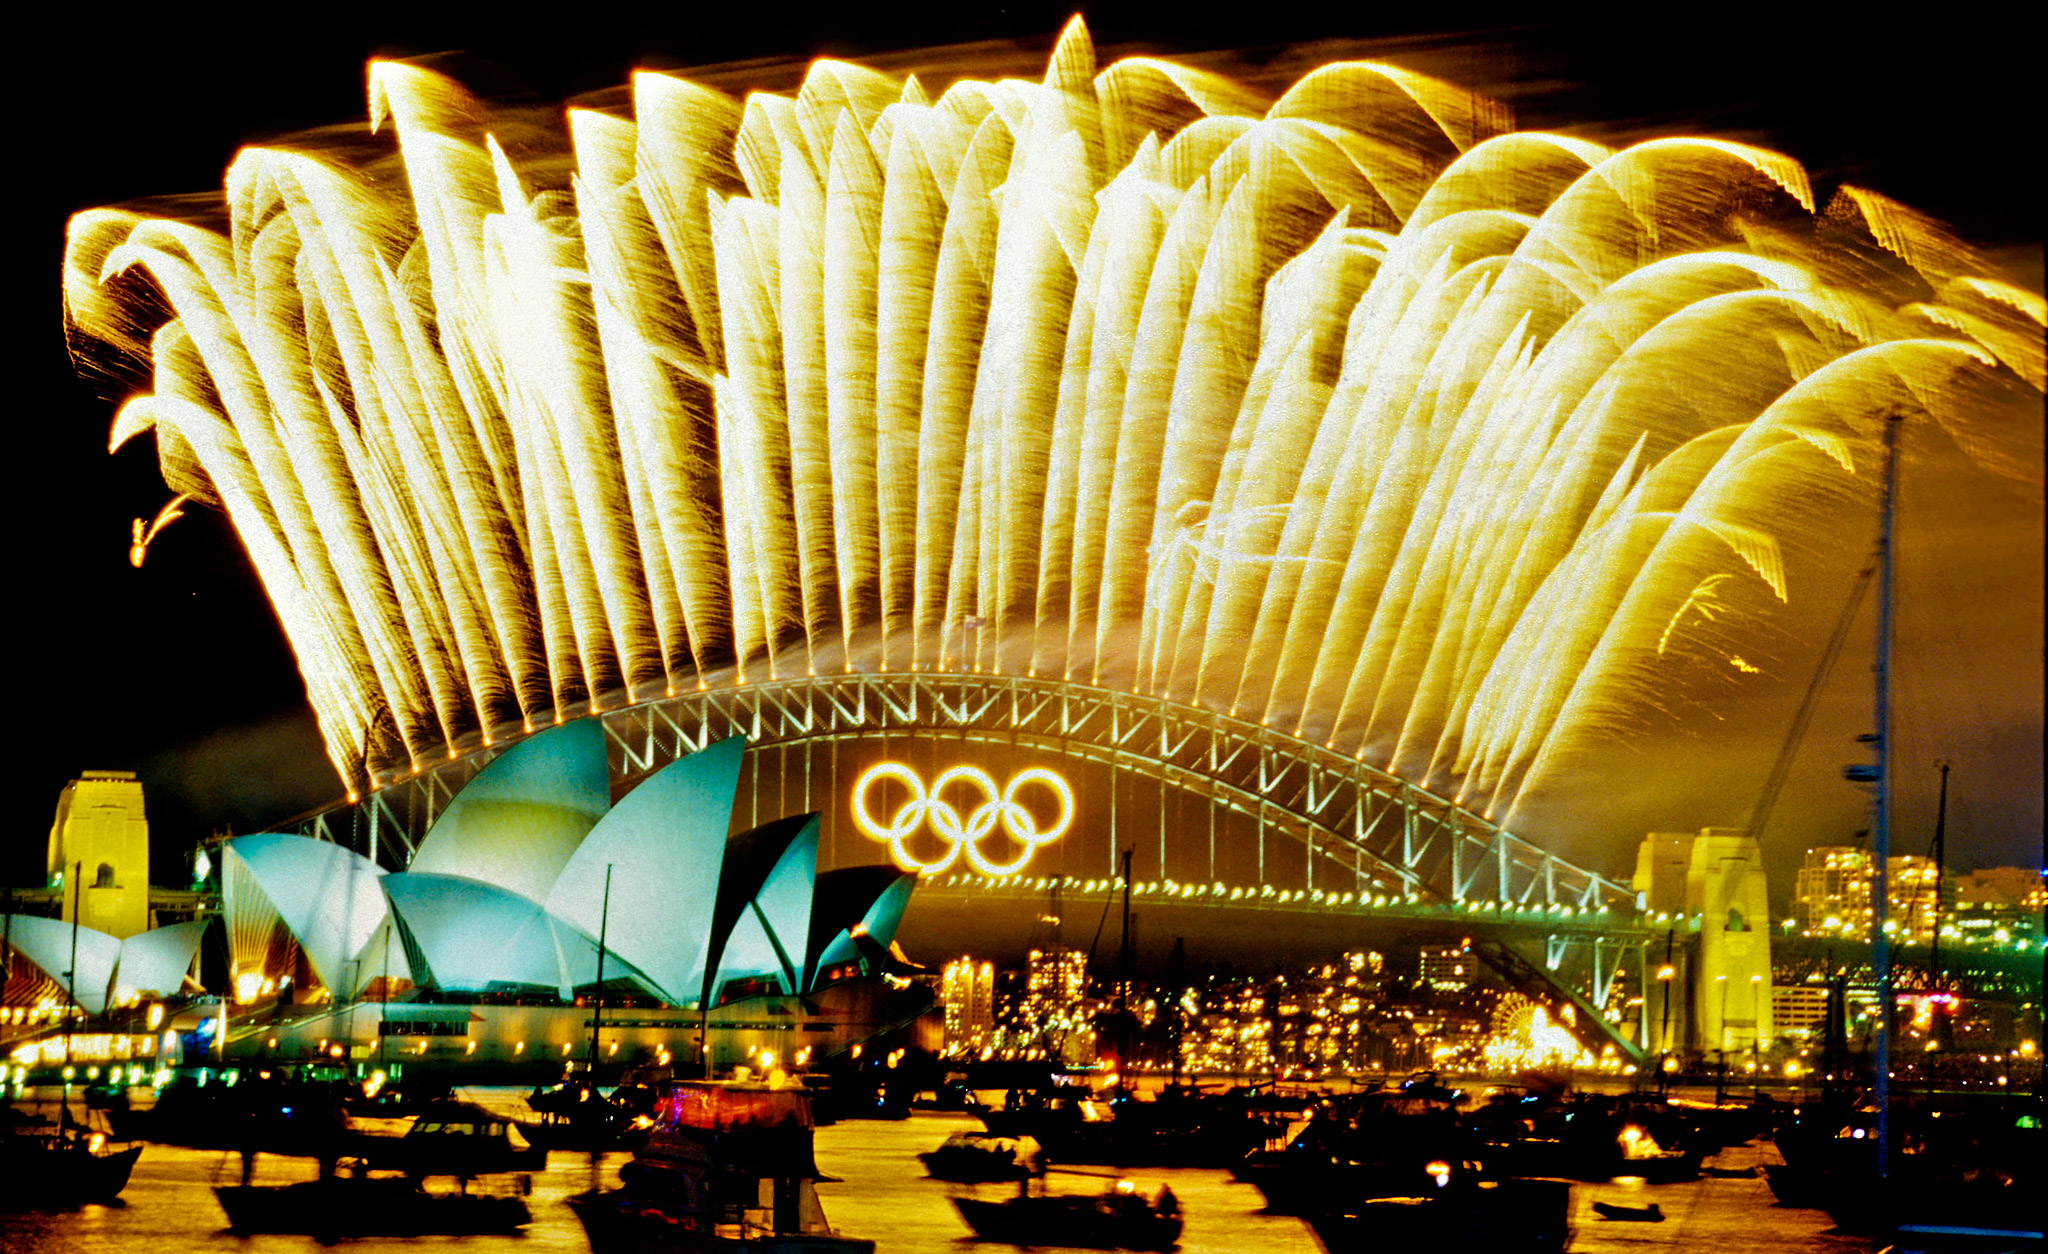 sport added to 2000 olympics in sydney - photo#6